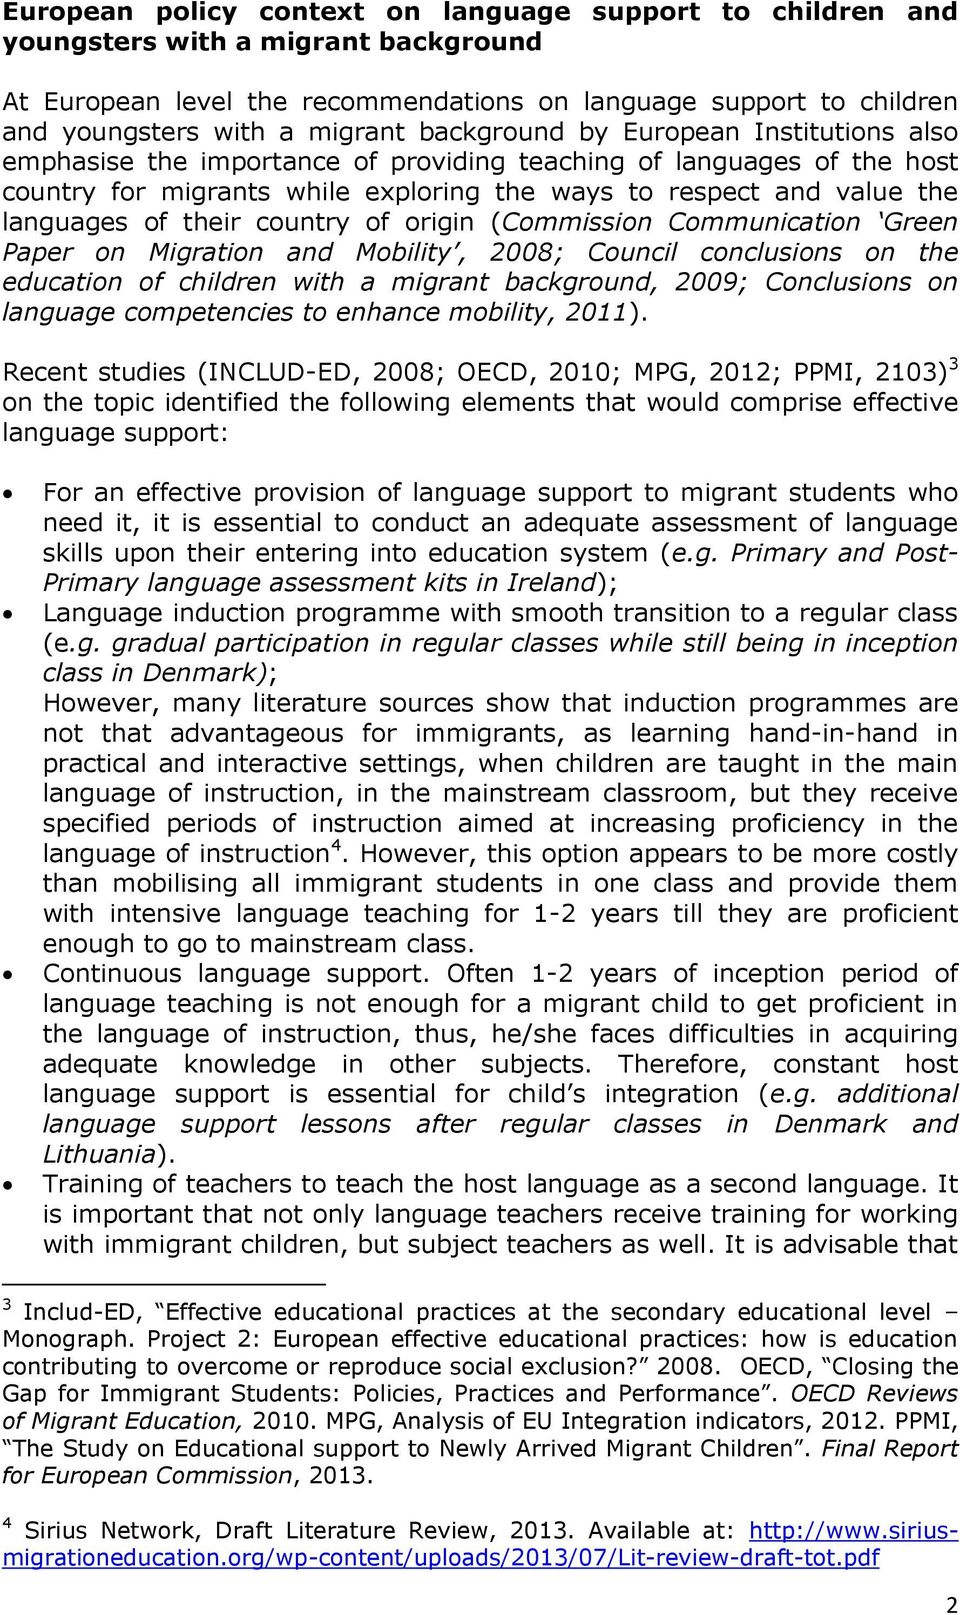 their country of origin (Commission Communication Green Paper on Migration and Mobility, 2008; Council conclusions on the education of children with a migrant background, 2009; Conclusions on